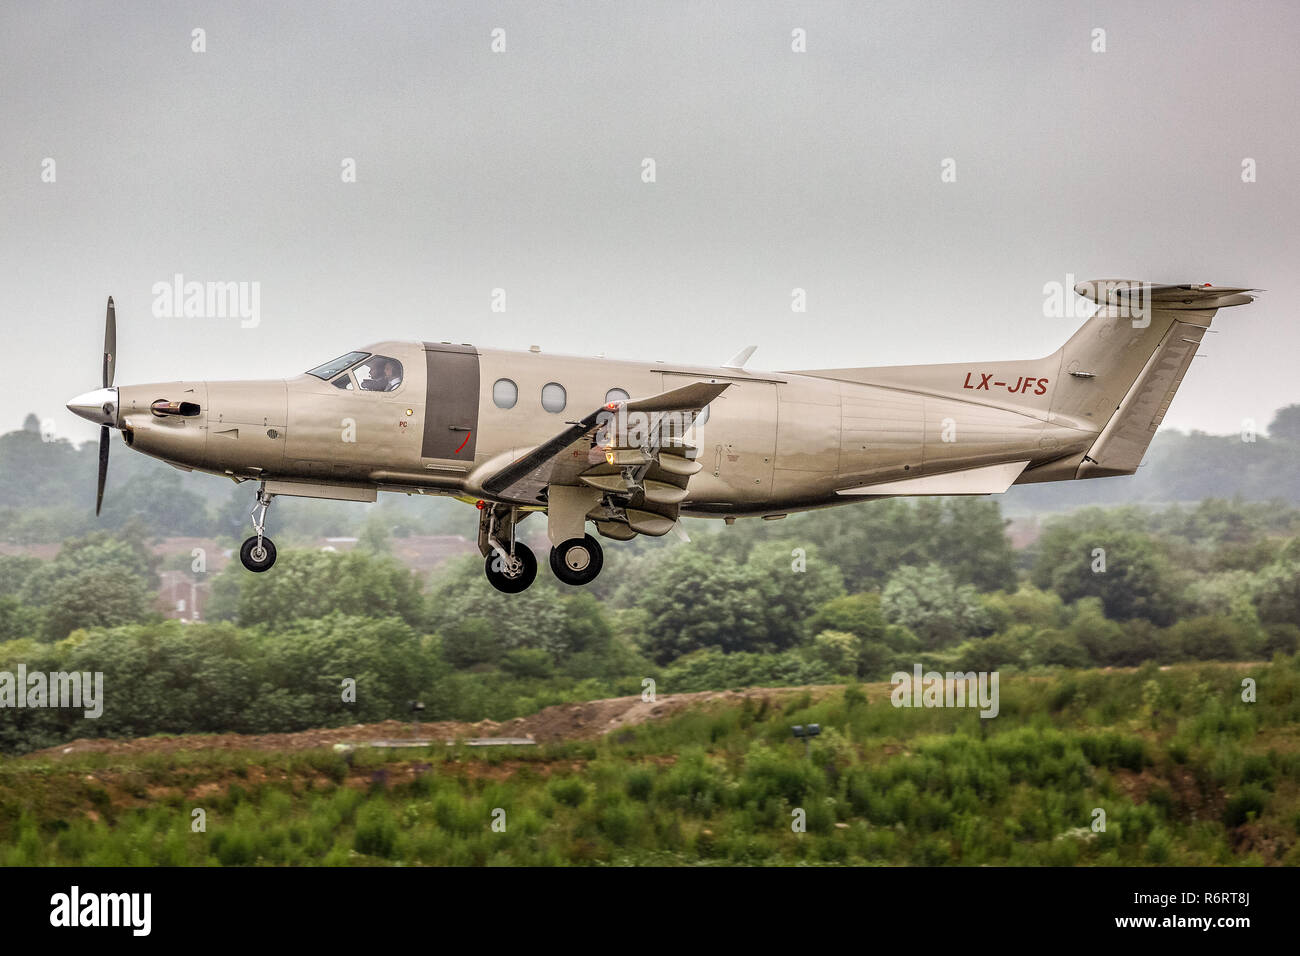 A Pilatus PC-12 turboprop executive aircraft, registered in Luxembourg as LX-JFS, taking off from London Luton Airport in England - Stock Image